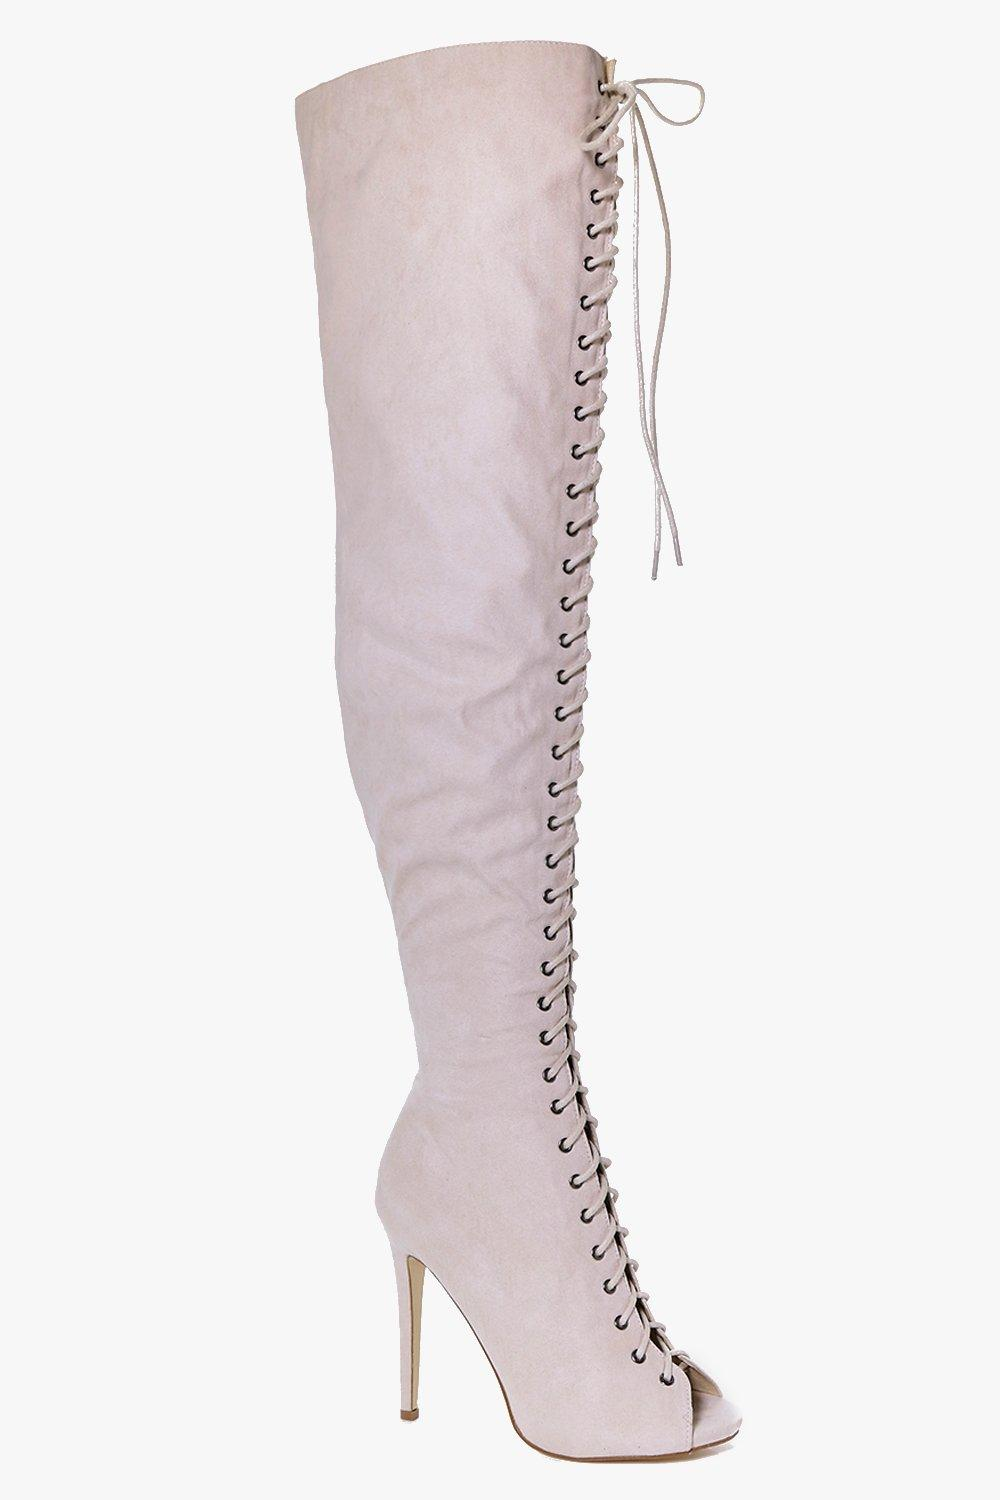 Lucy Lace Up Peeptoe Over The Knee Boot